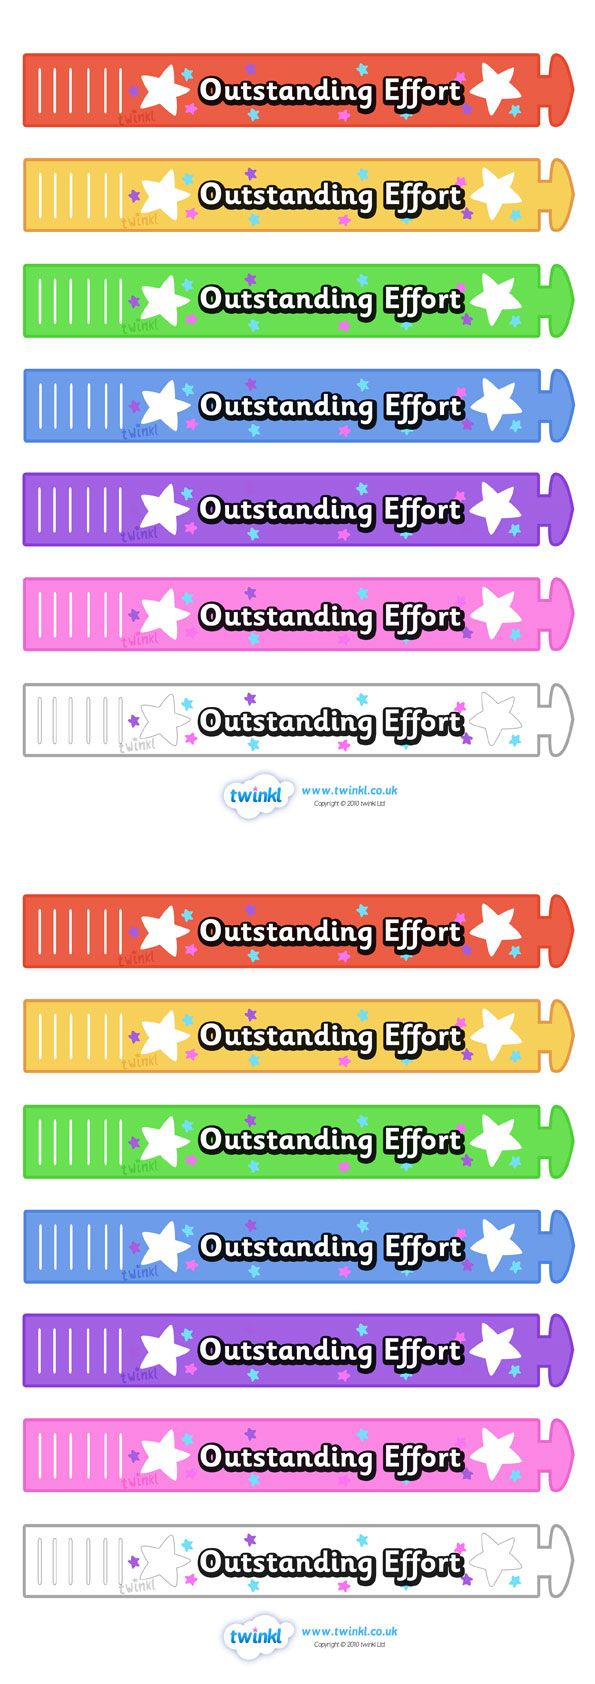 Twinkl Resources >> Wristband Awards Outstanding Effort  >> Thousands of printable primary teaching resources for EYFS, KS1, KS2 and beyond! wristband, band, award, reward, certificate, medal, rewards, school reward, star of the day, outstanding effort,